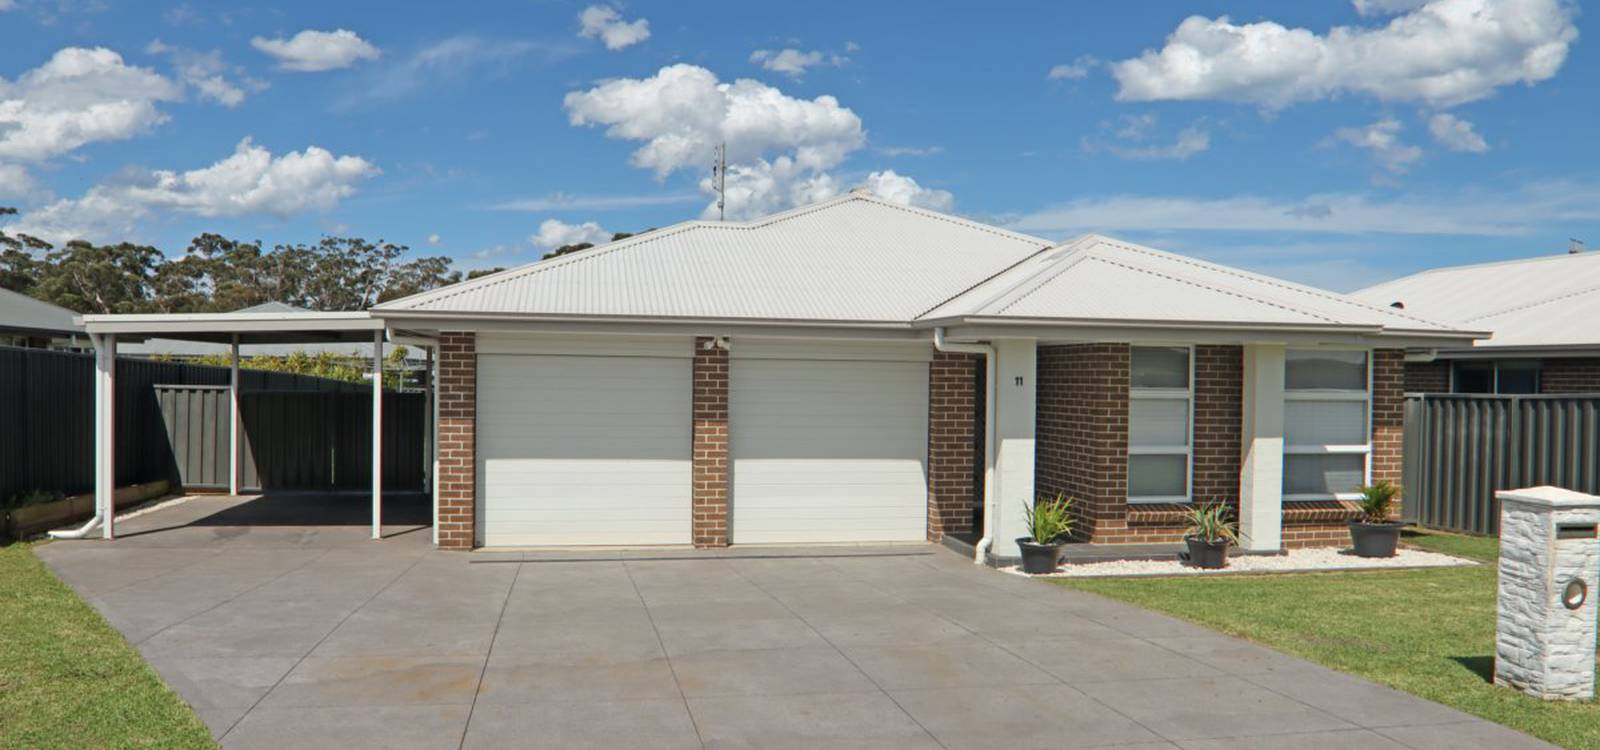 11 Chichester Road SUSSEX INLET, NSW 2540 - photo 1